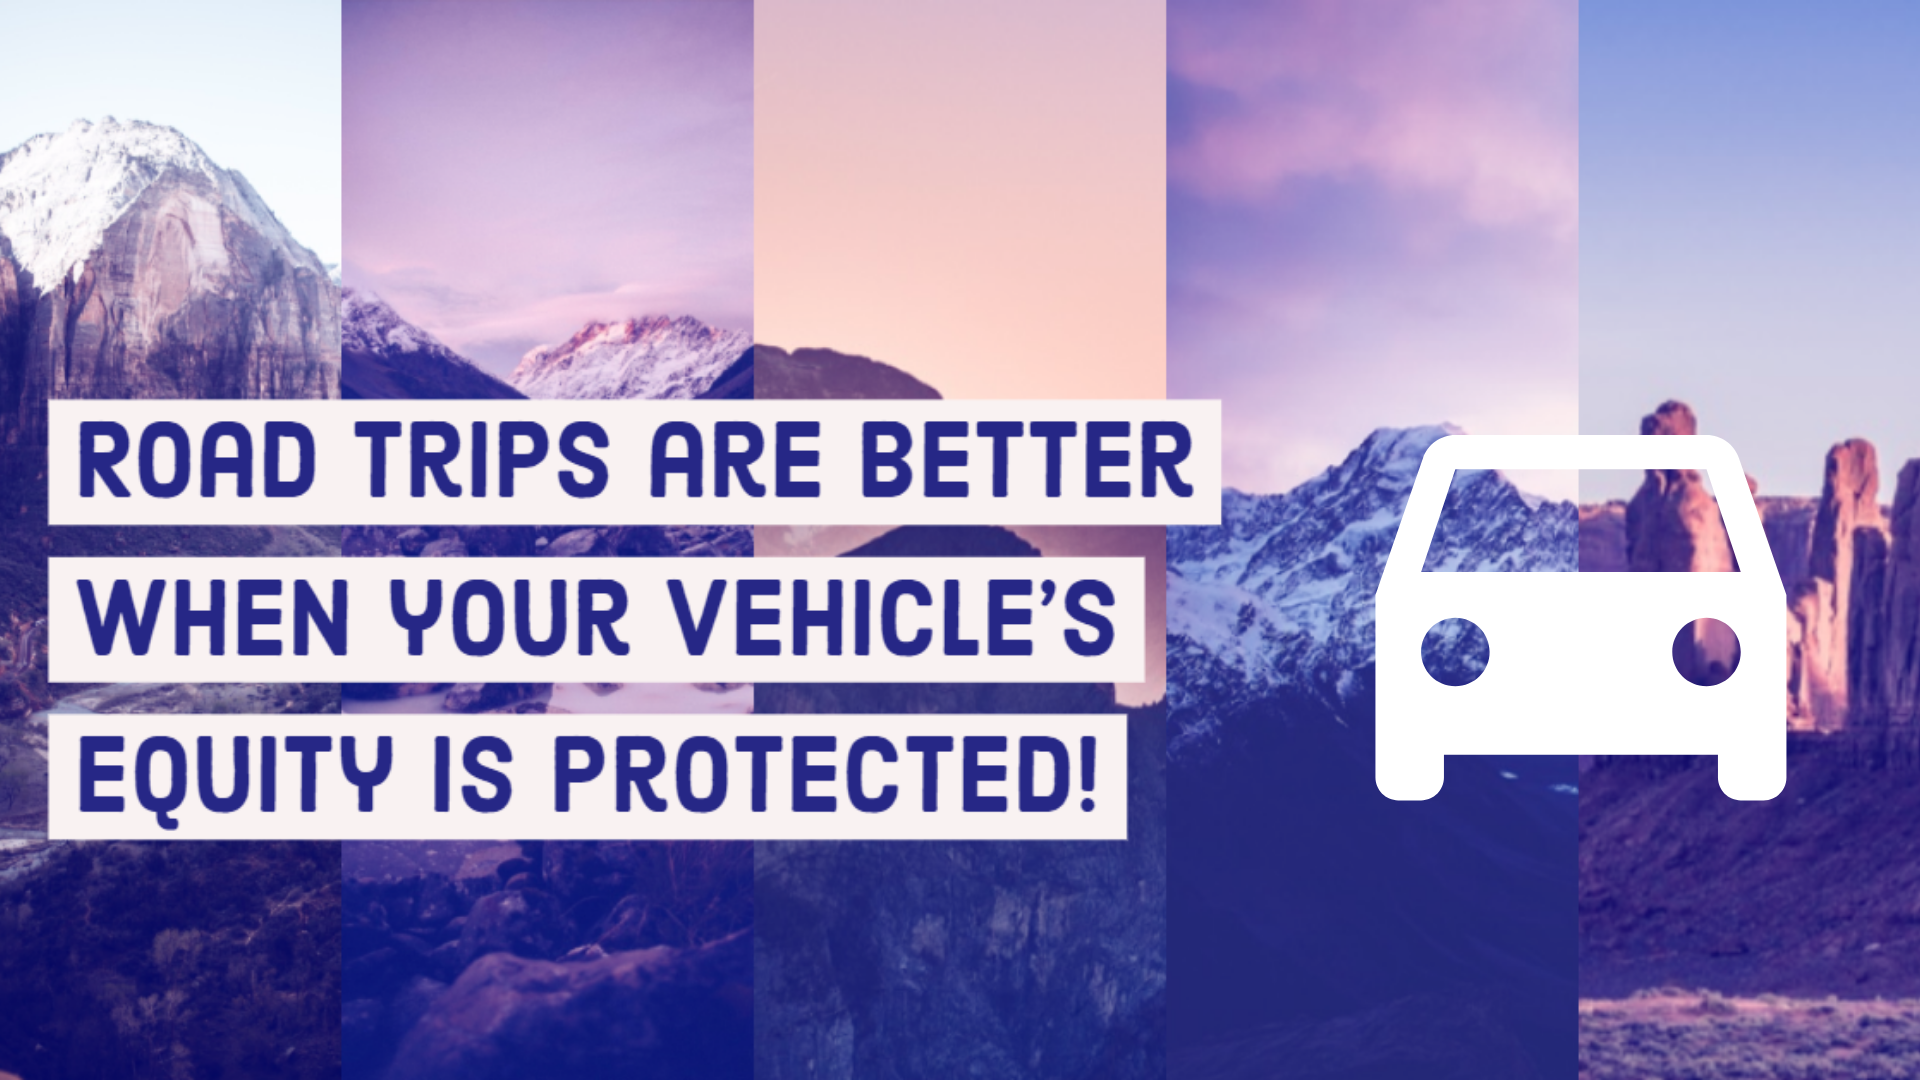 Road trips are better when your vehicle's equity is protected!